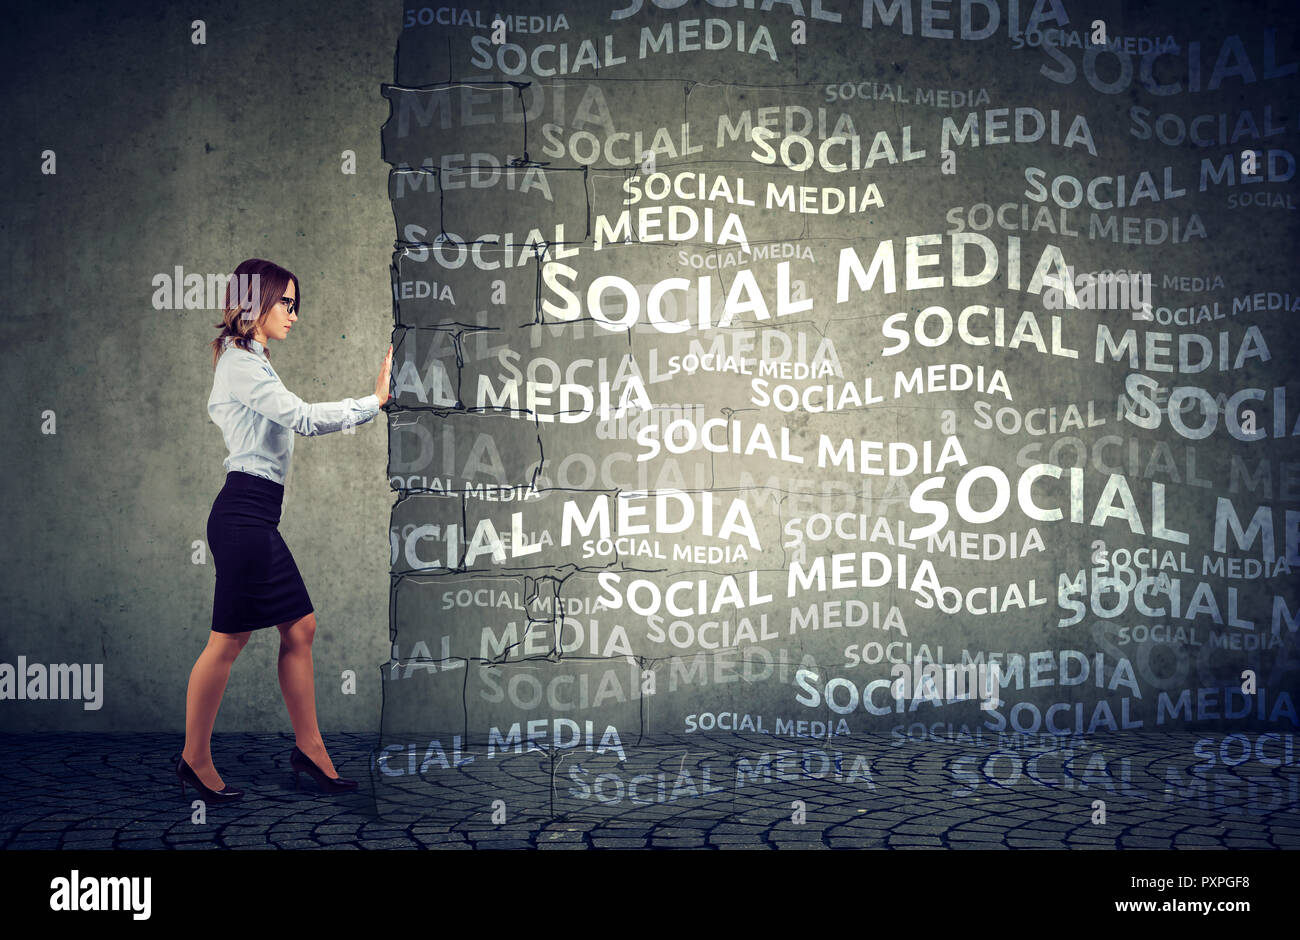 Business woman determined to stop social media pressure and influence - Stock Image